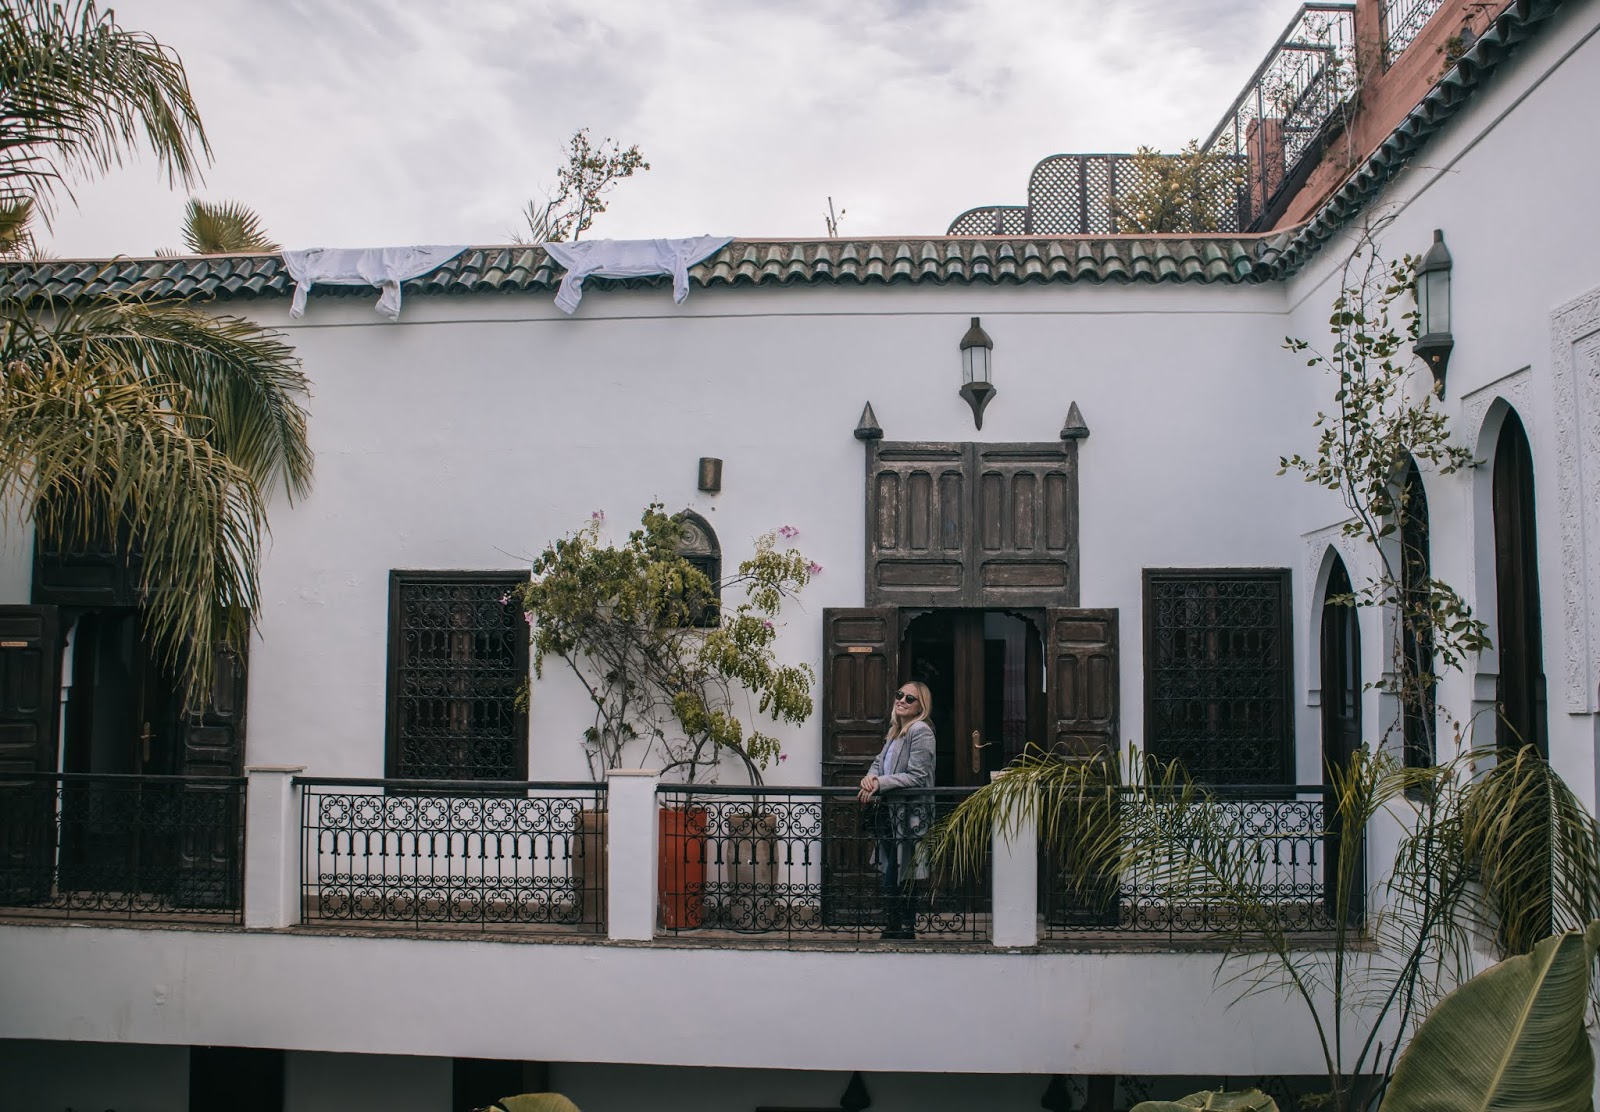 Suz and the Sun, Suz and the Sun travel, Marrakesh 2018, Marrakesh travel, Suz and the Sun style, Riad Pachavana